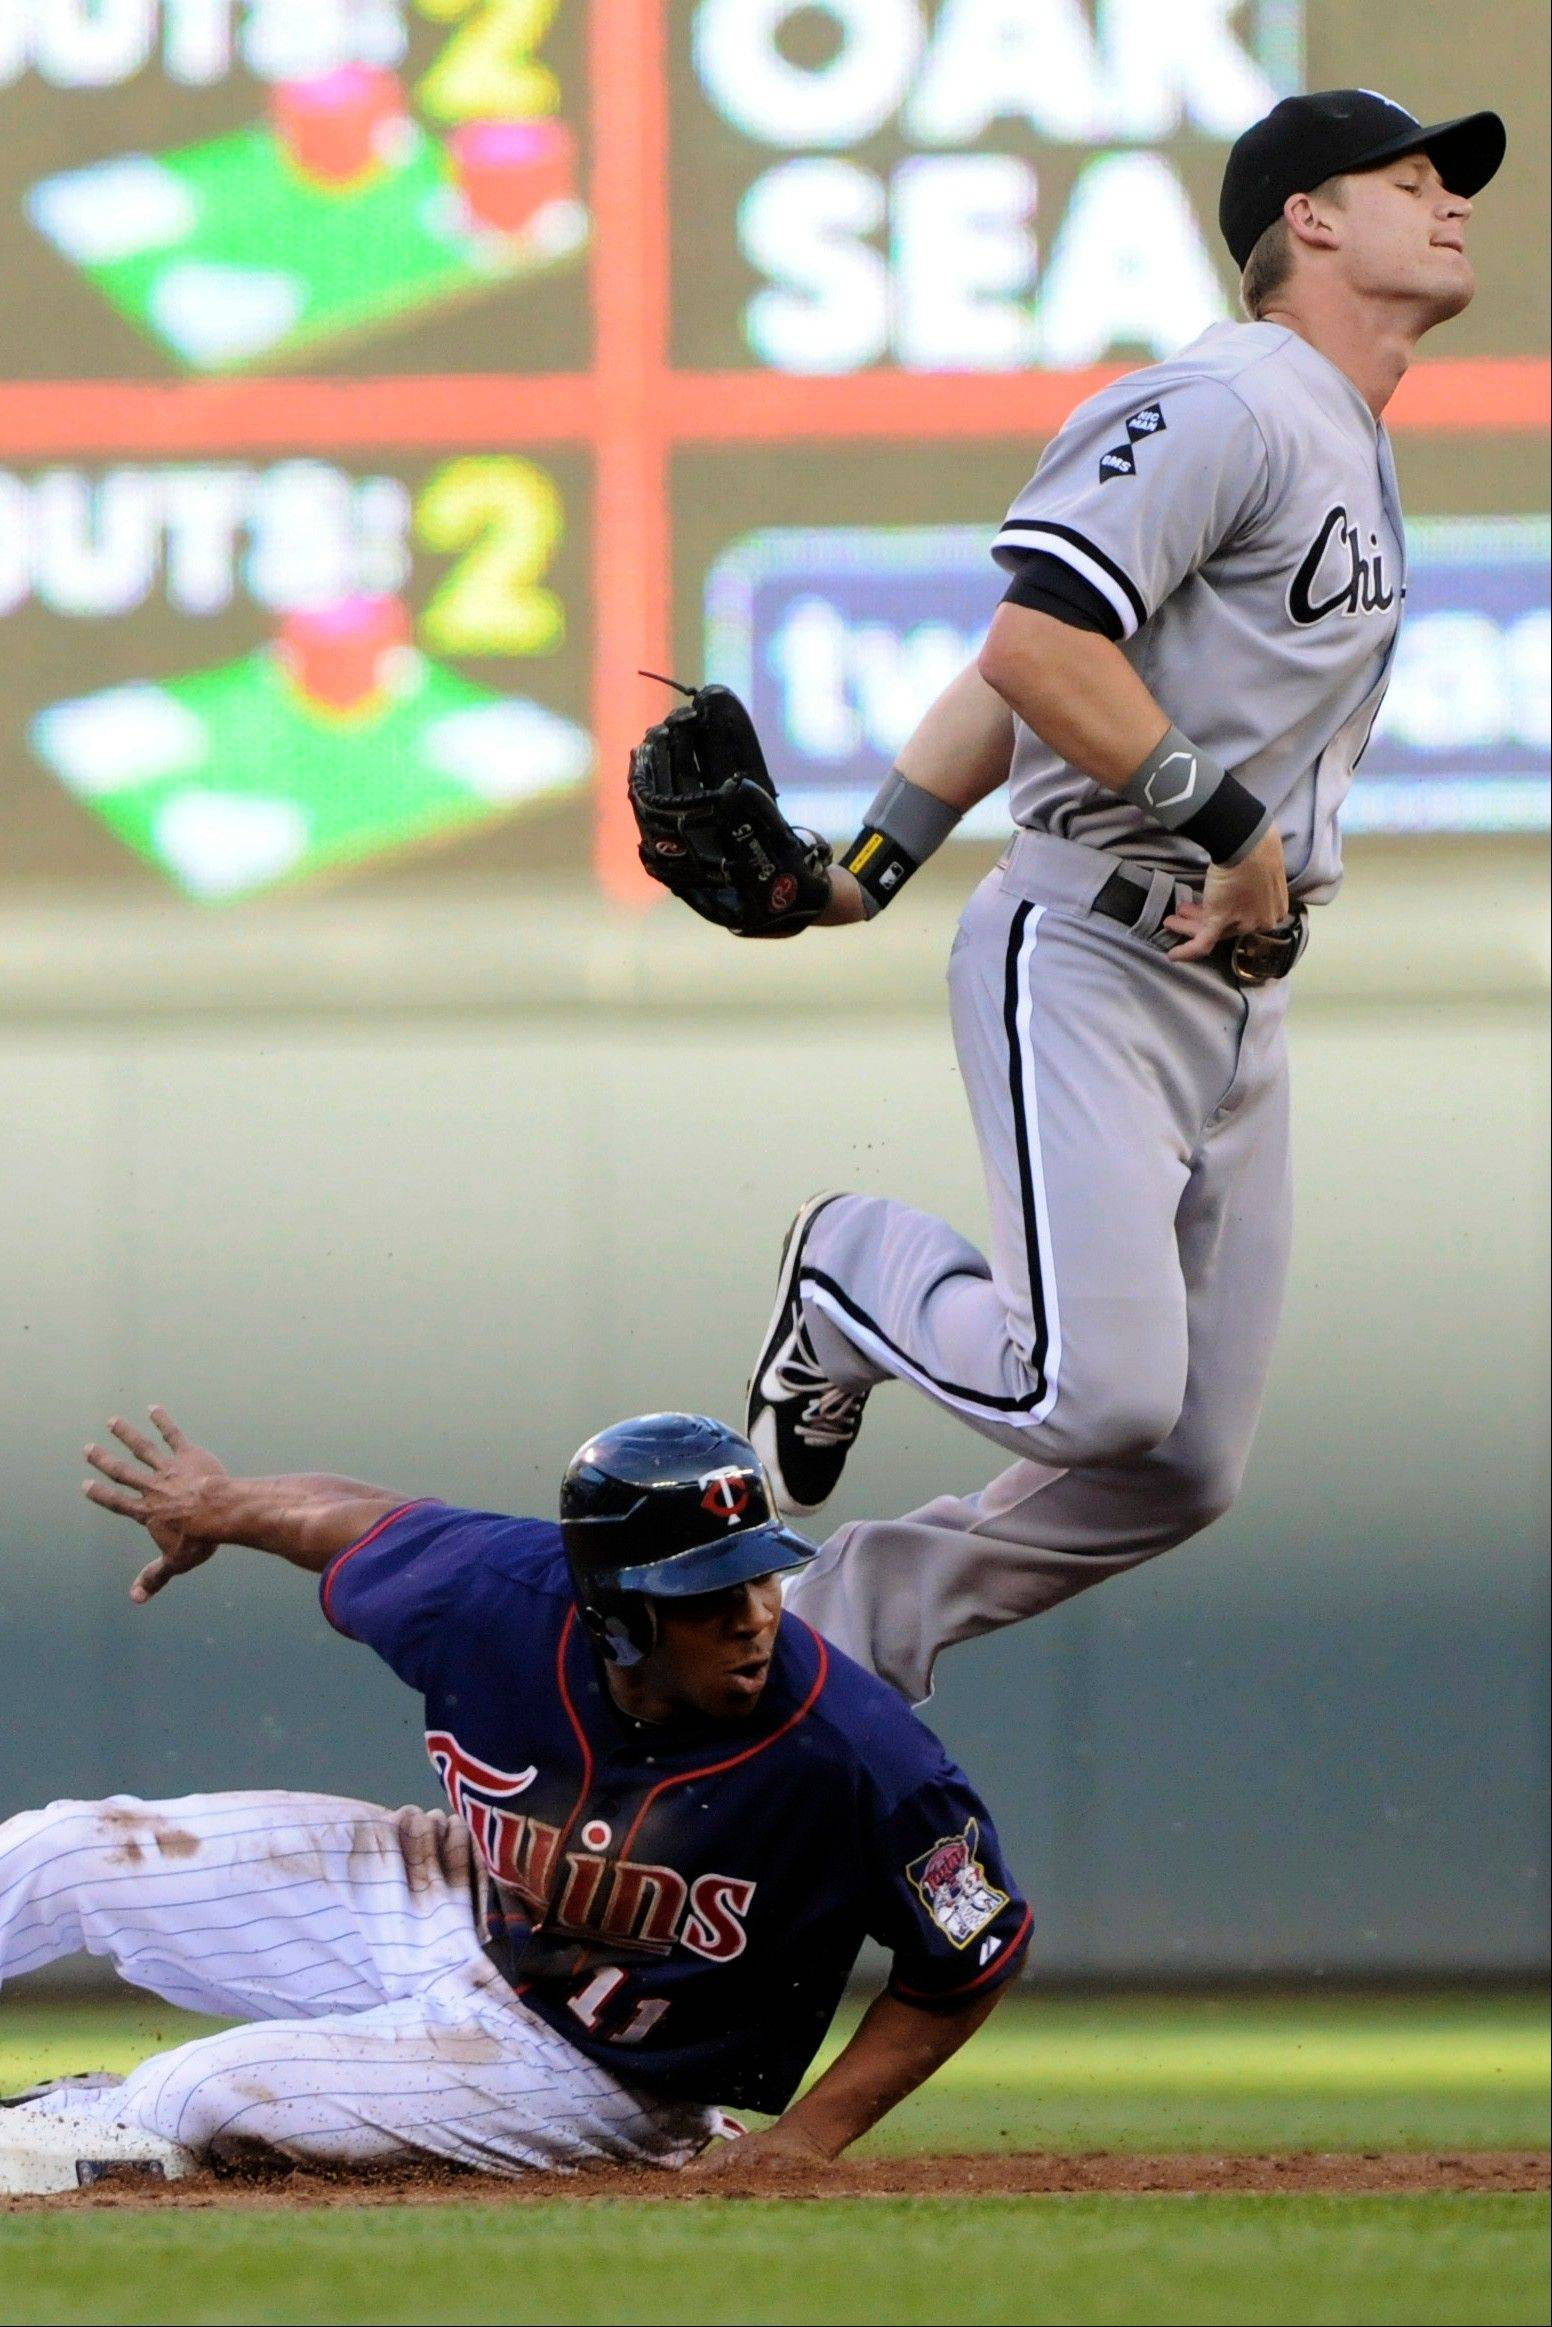 Minnesota Twins' Ben Revere, left, looks back after the force at second as Chicago White Sox second baseman Gordon Beckham completes the double play hit into by Josh Willingham in the first inning of a baseball game, Monday in Minneapolis.